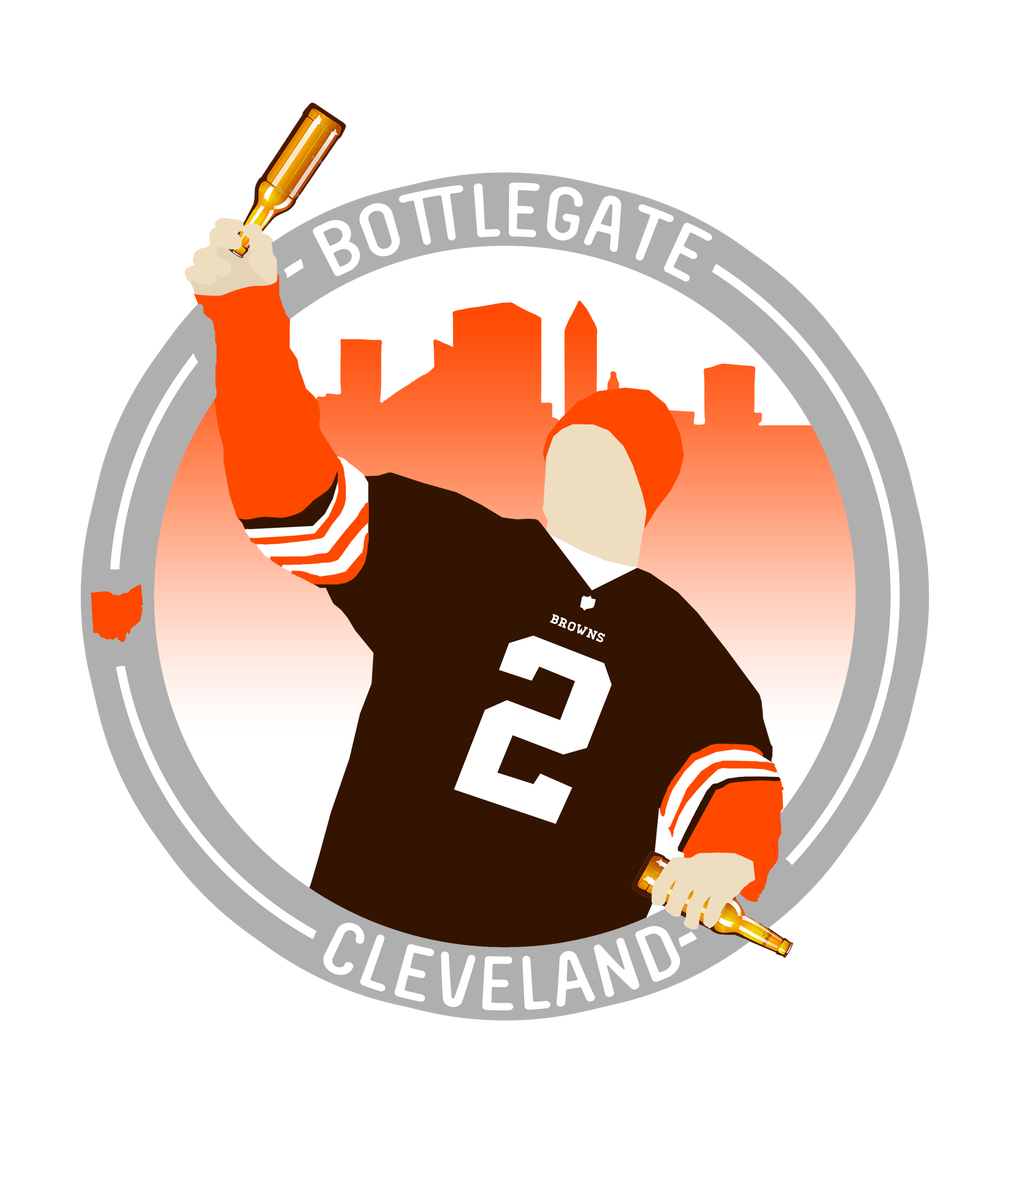 Victory monday browns clipart png free library Cleveland Browns Cleveland Cavaliers Logo - floyd mayweather ... png free library